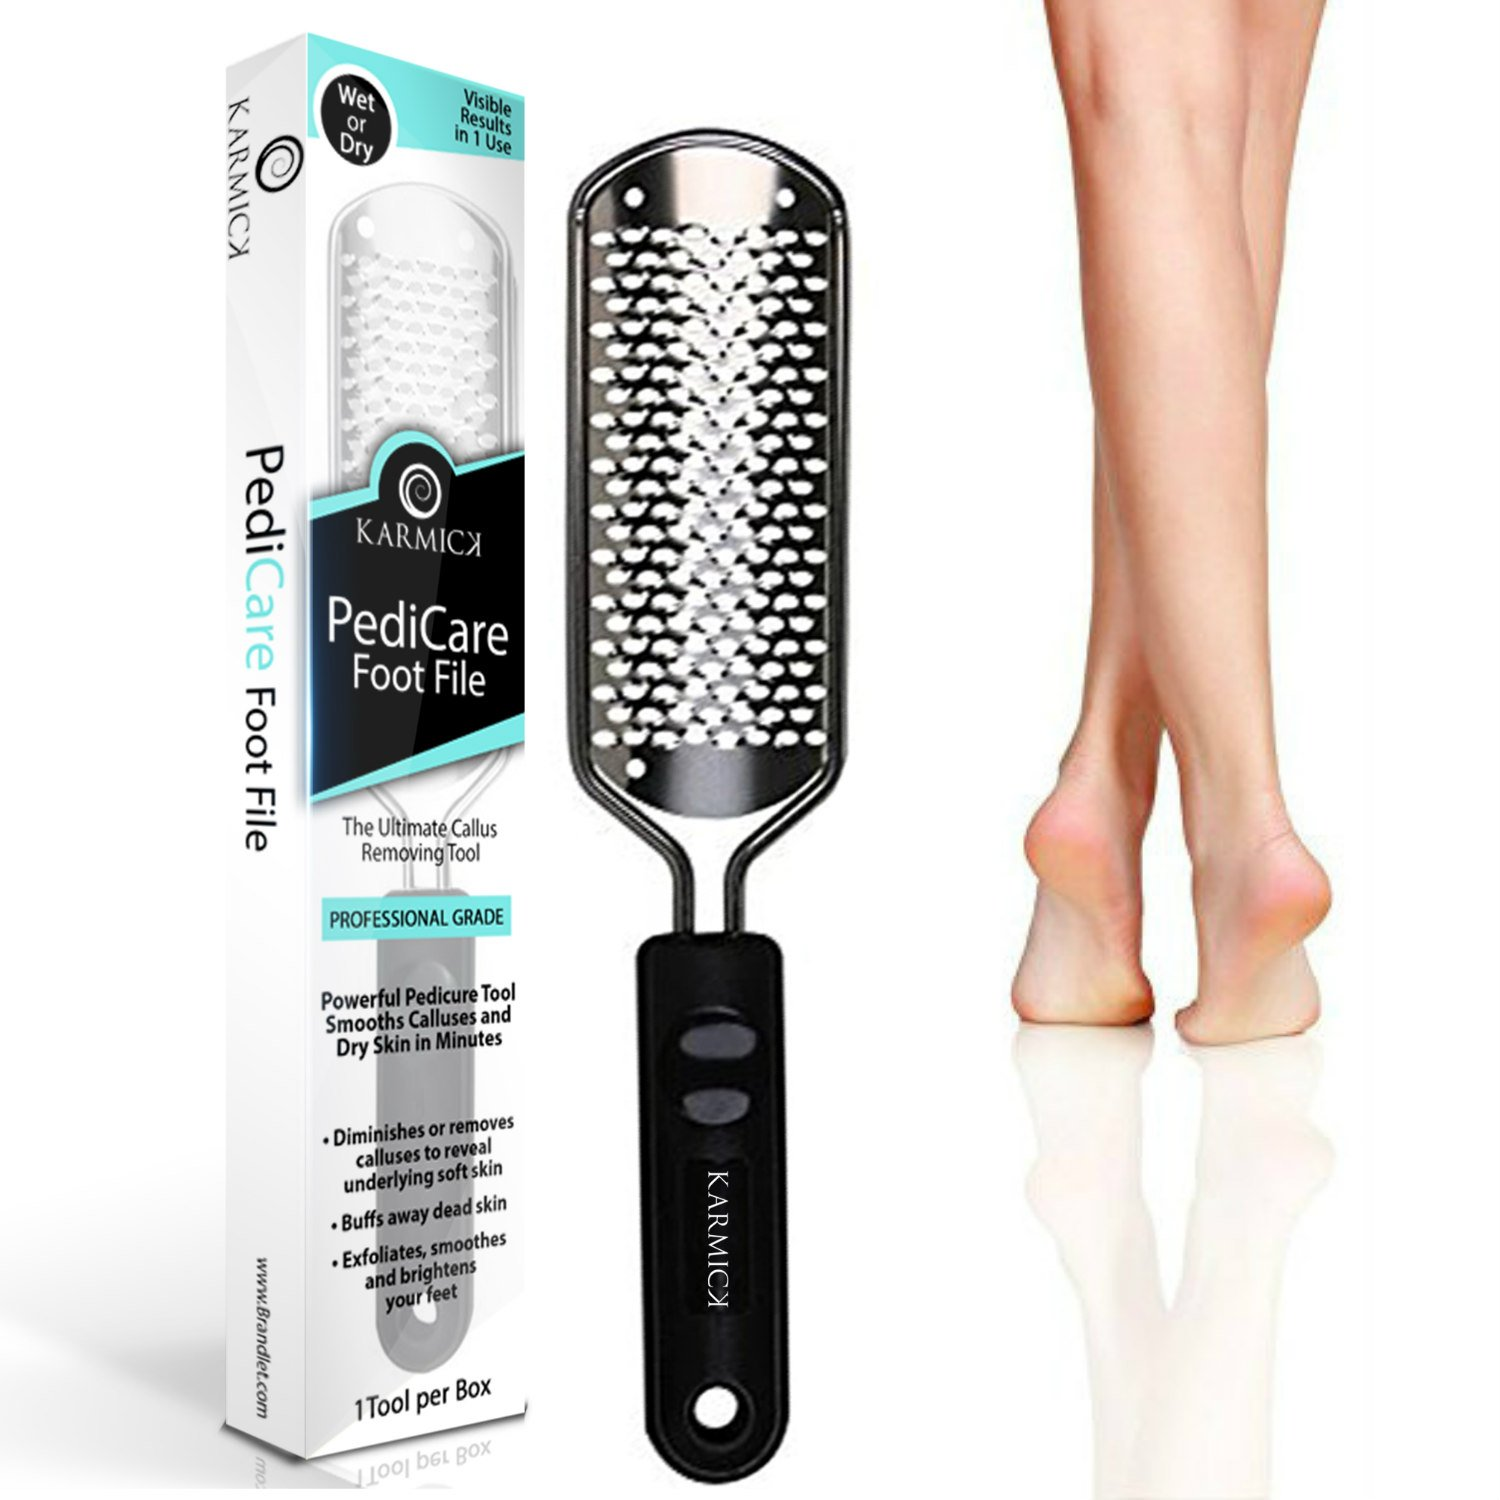 Pedi Care Foot File for Feet Callus Removal Foot Rasp - Works Wet and Dry - Salon Grade Pedicure Callus Trimmer To Remove Hard Skin and Smooth Dry Cracked Heels by Karmick (Coarse File)